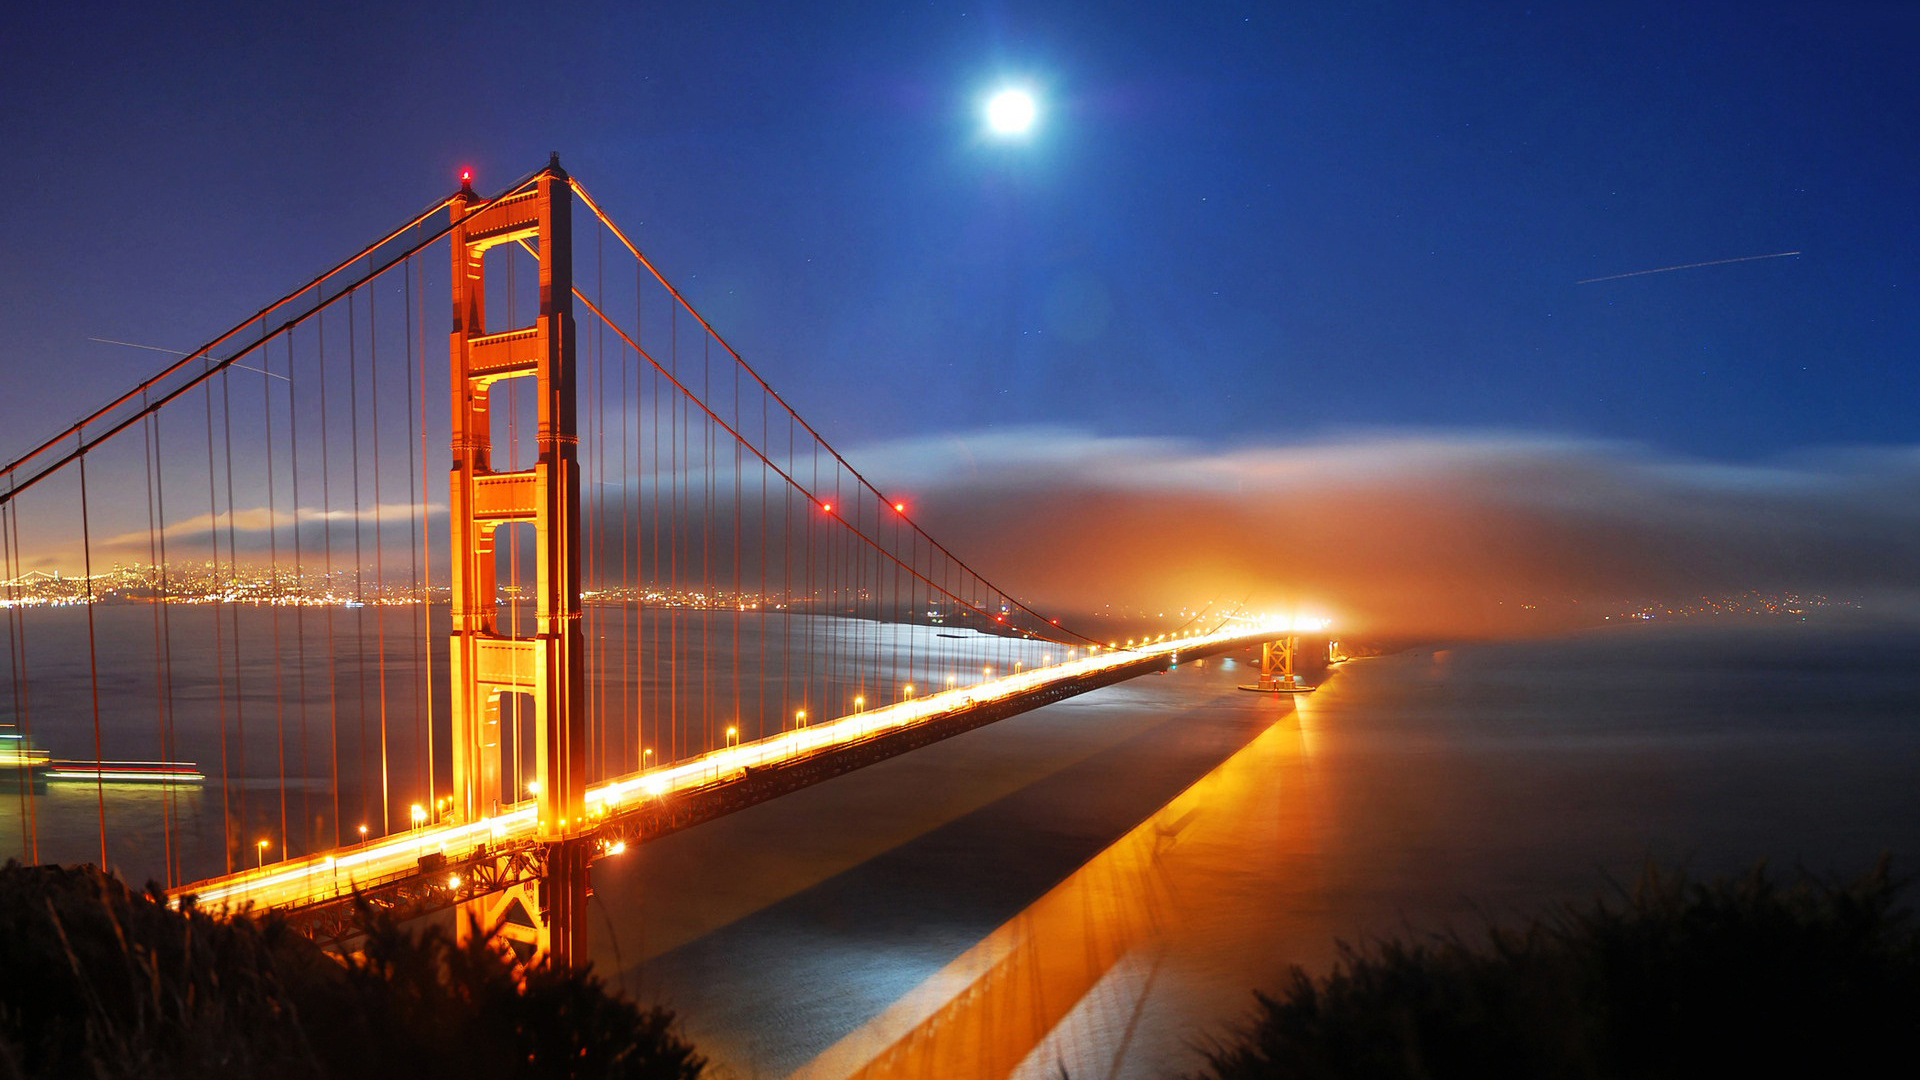 golden gate bridge wallpapers, pictures, images